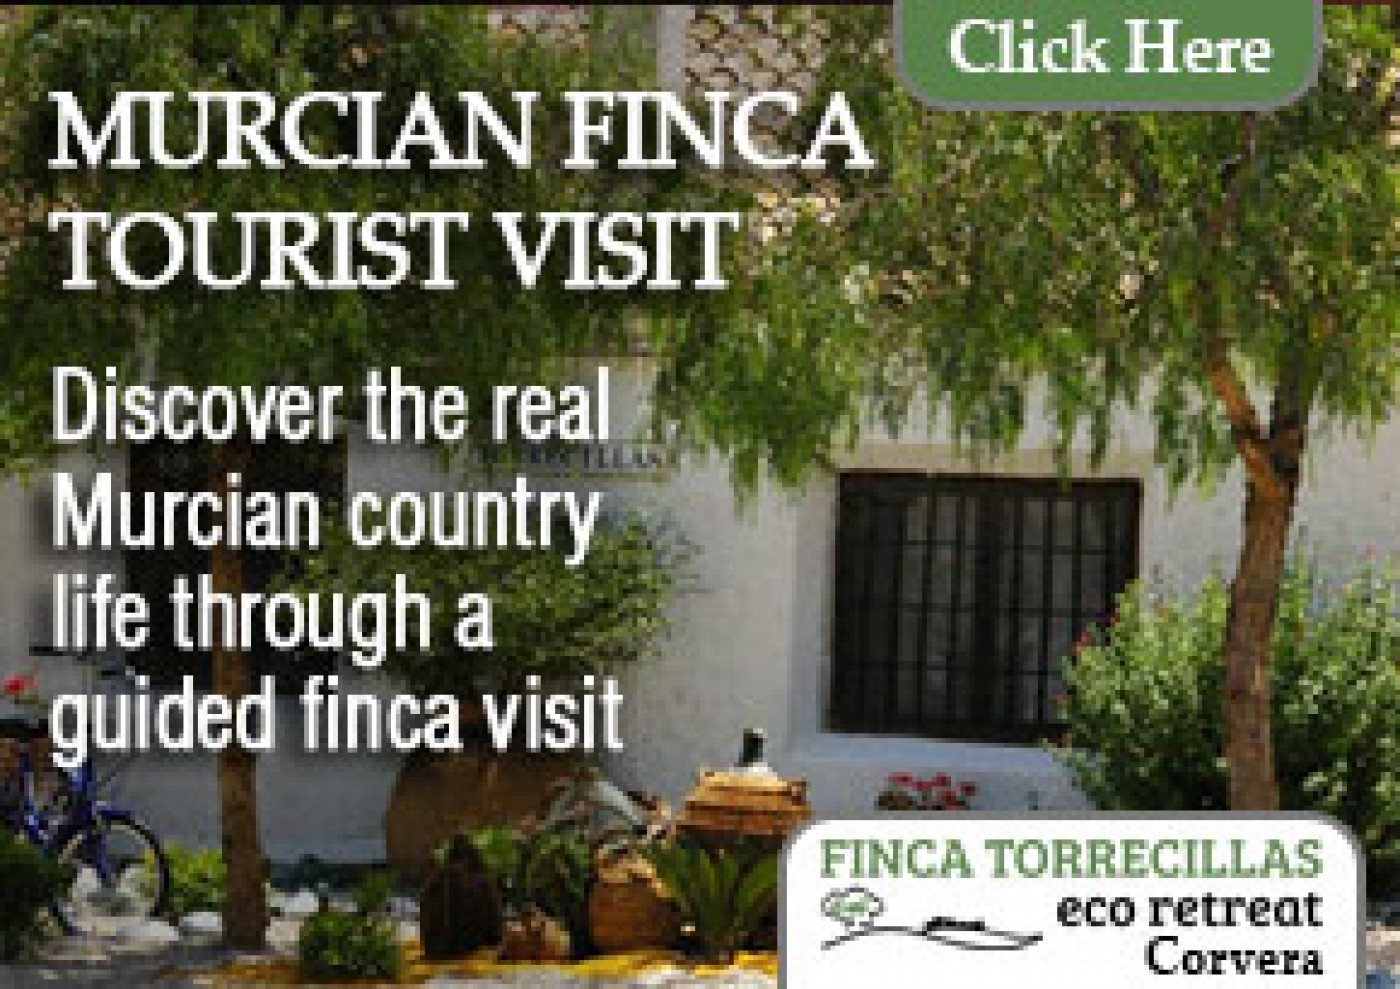 Finca Torrecillas Eco-activities, birdwatching, walking, Corvera